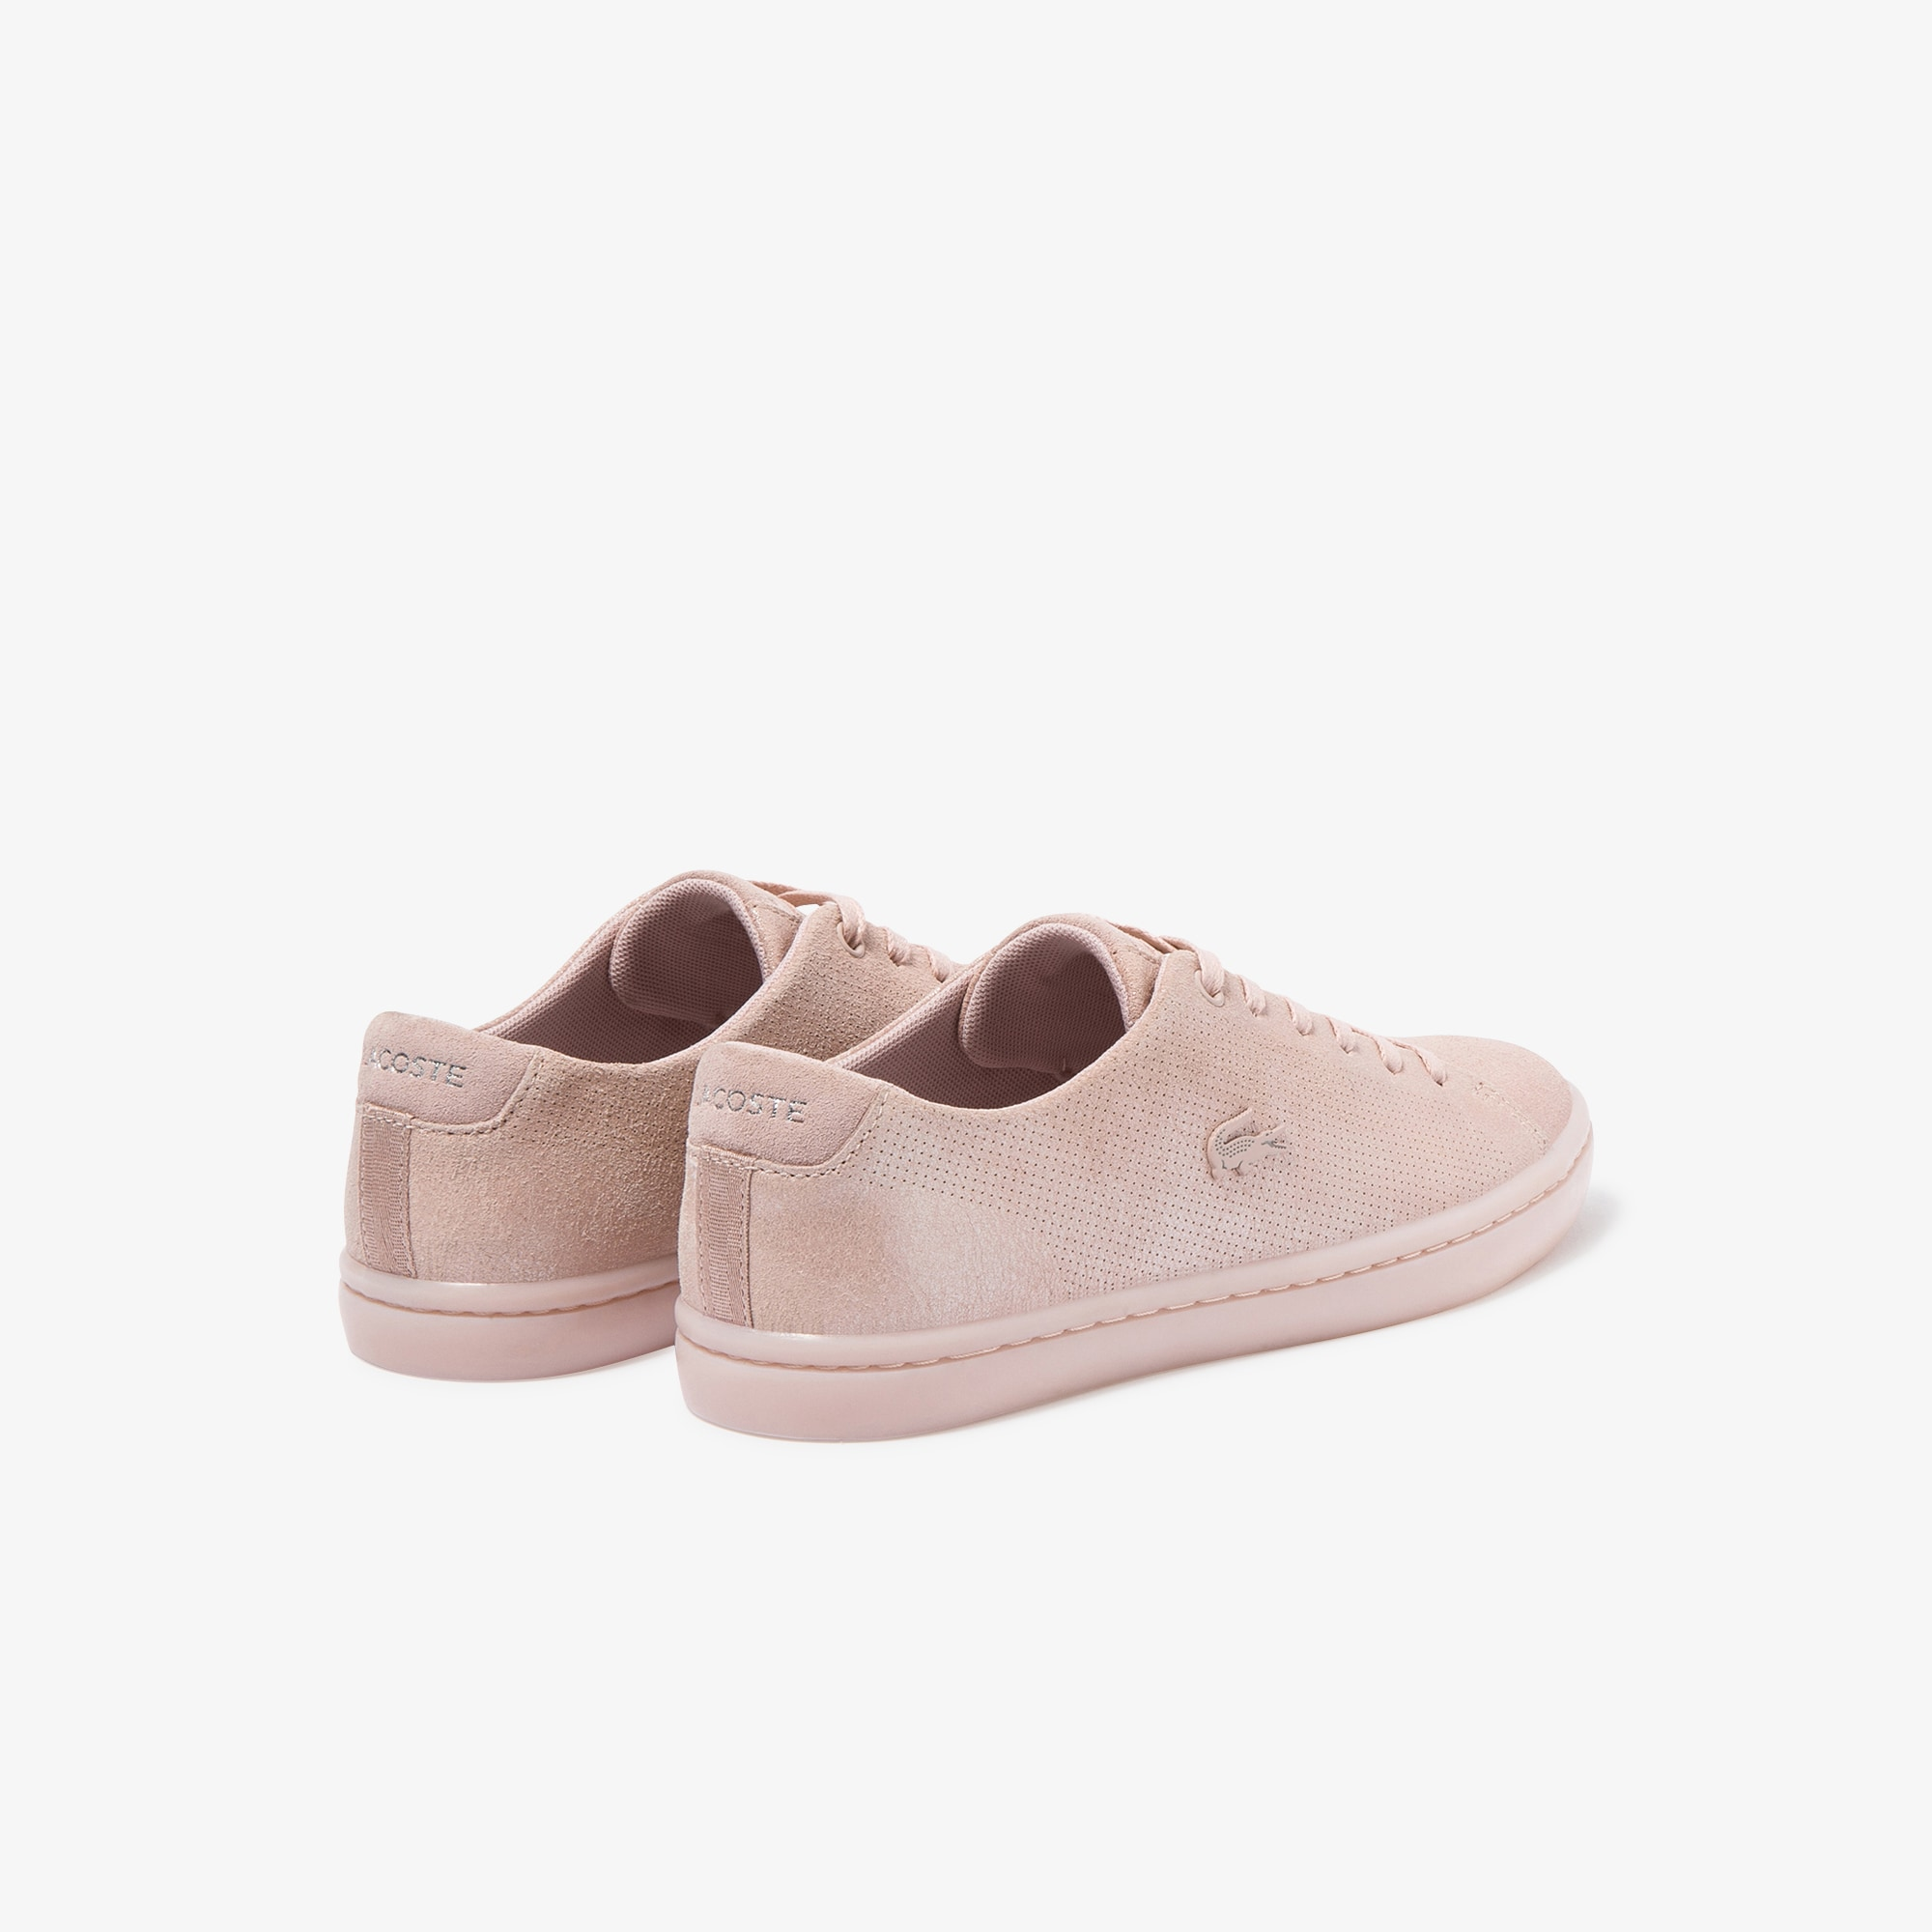 Damen-Sneakers SHOWCOURT 2.0 aus Veloursleder